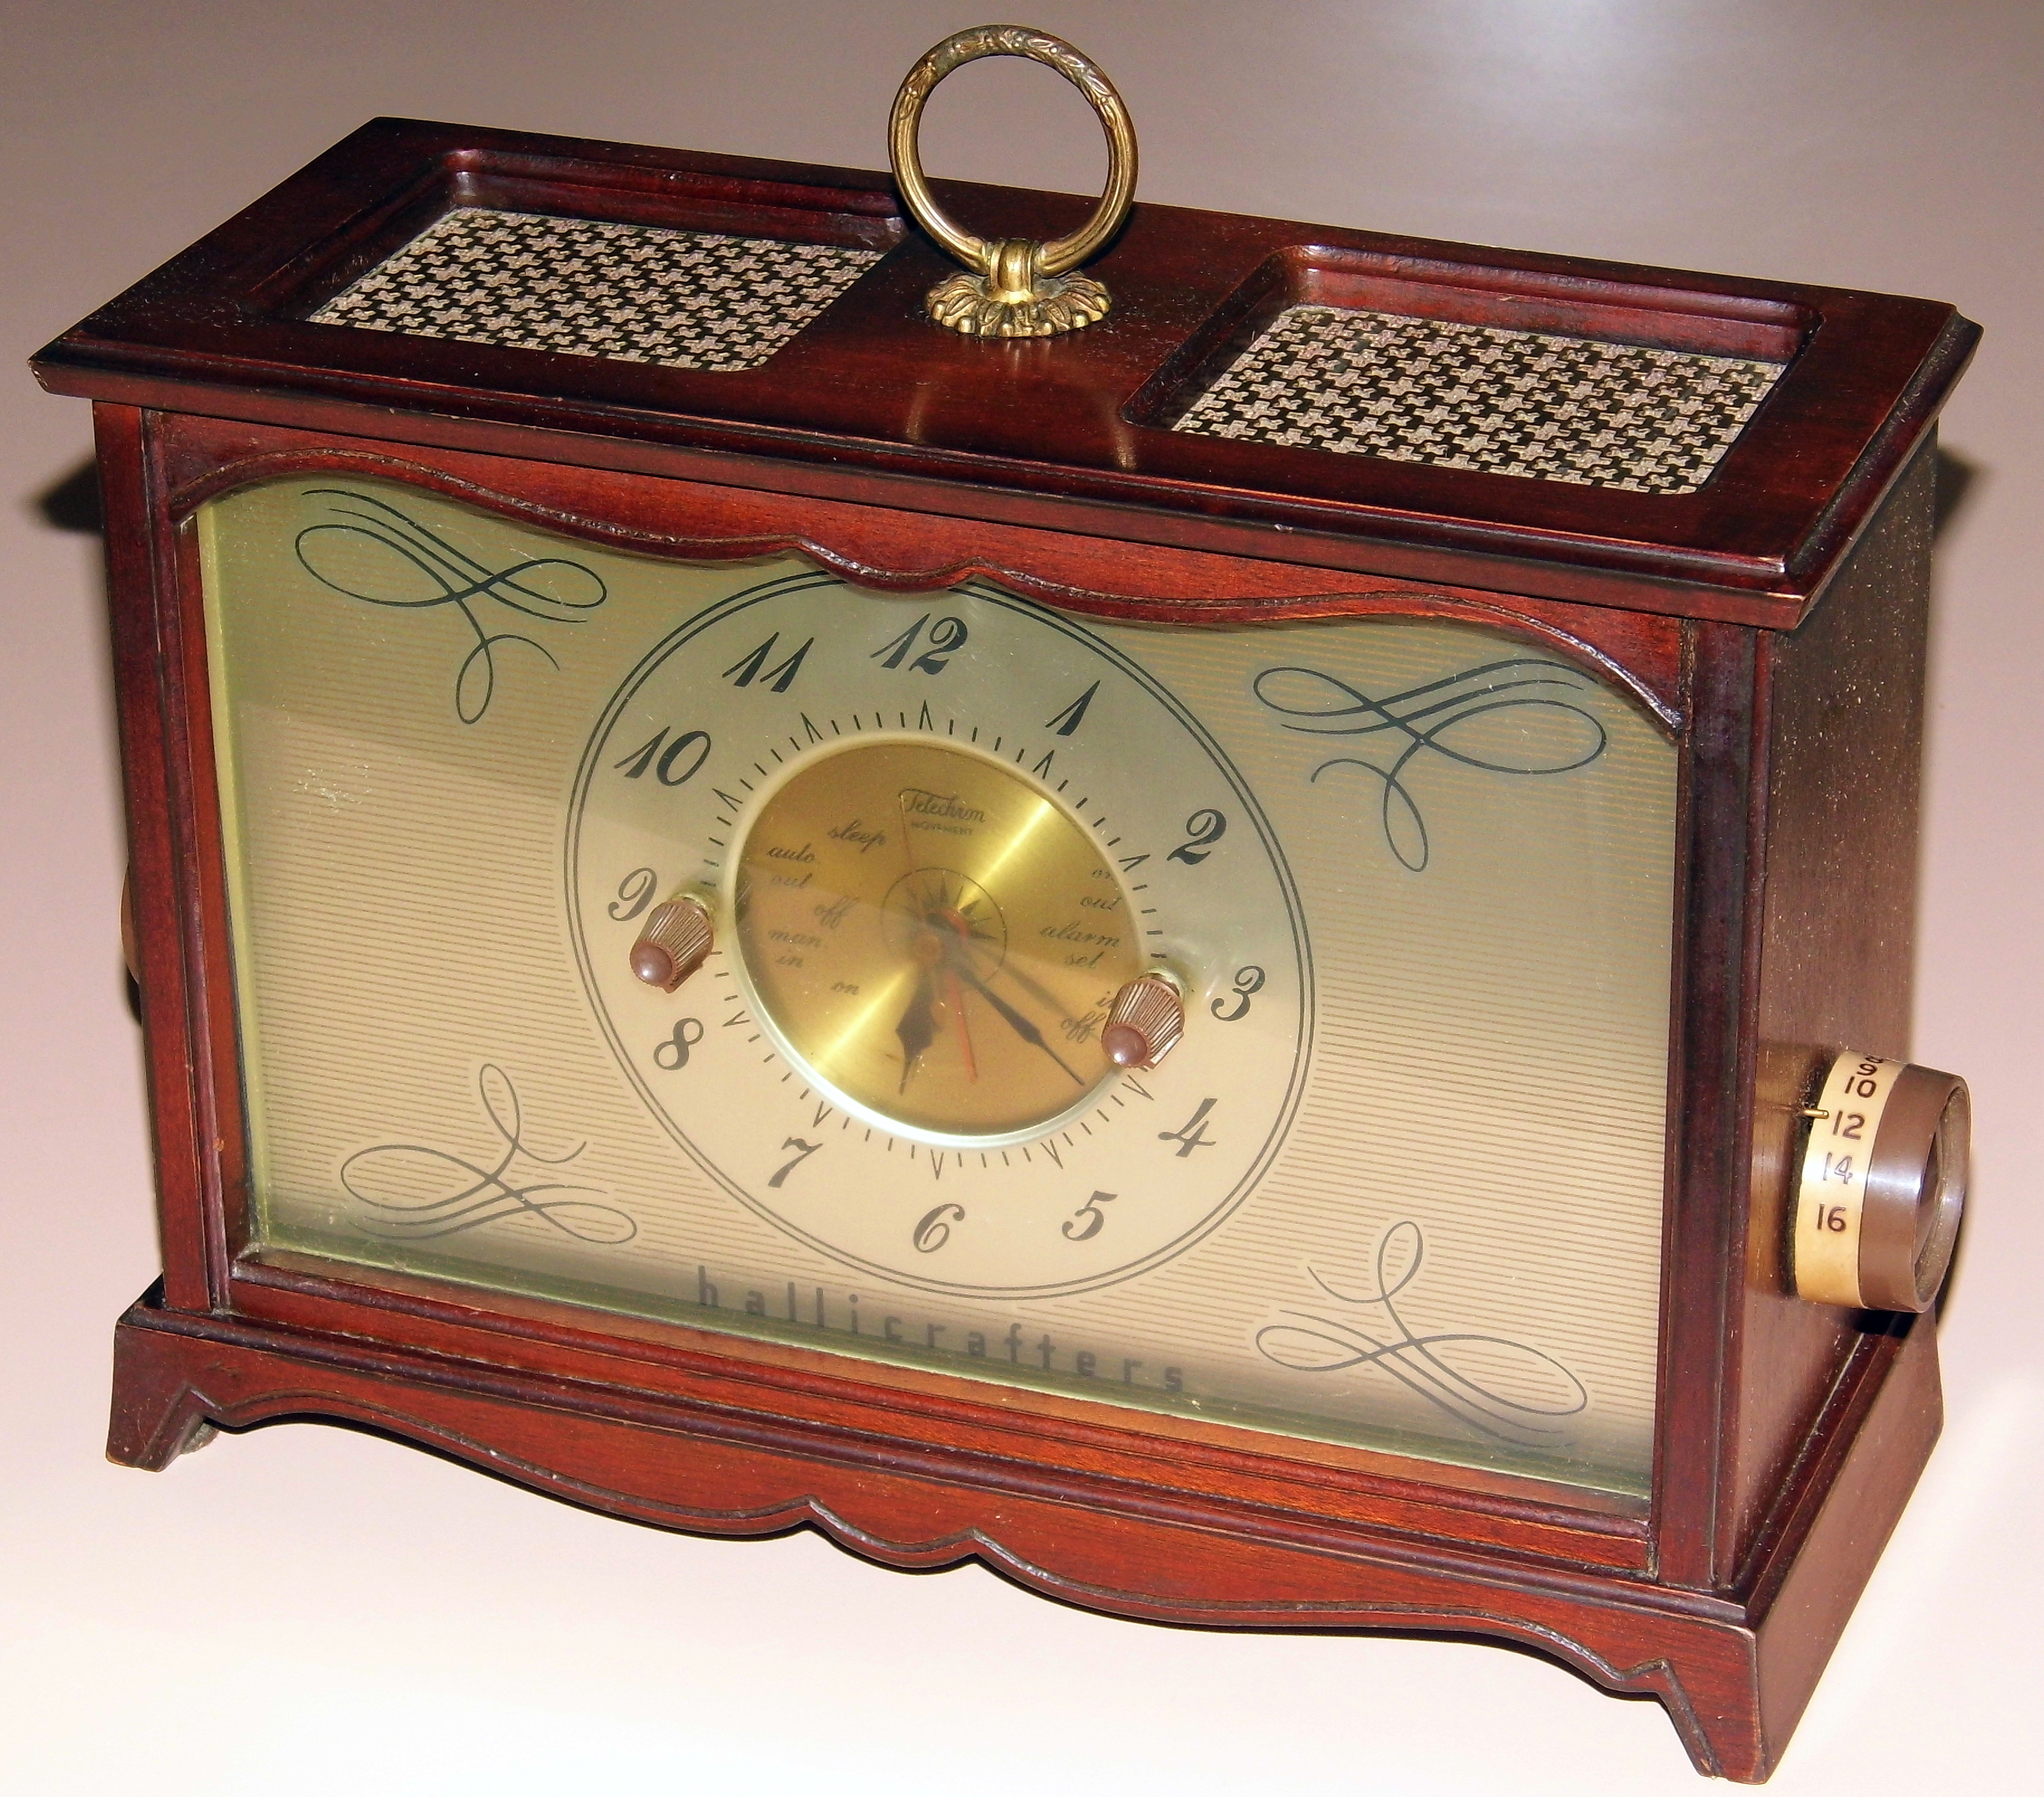 File:Vintage Hallicrafters Table Clock Radio, Model 51C1, 5 Tubes,  Broadcast Only